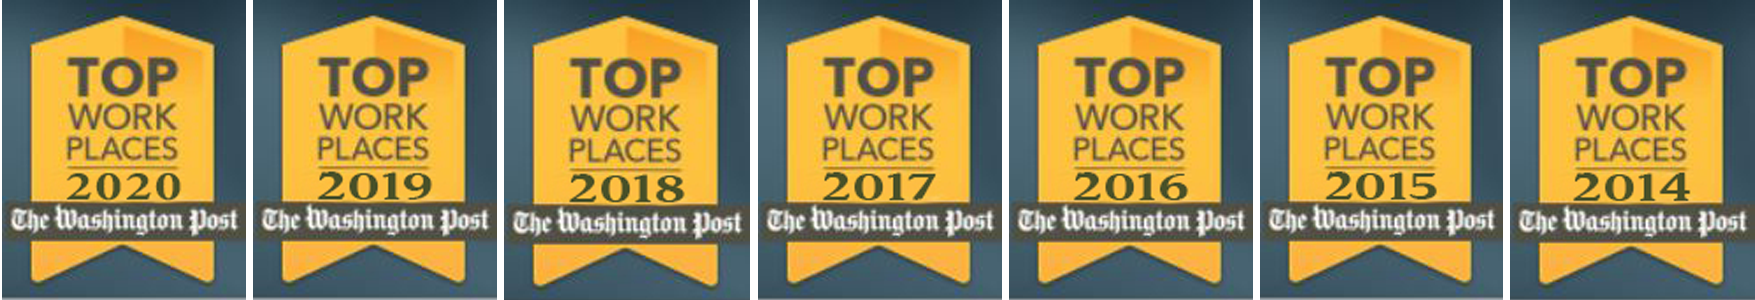 ActioNet Top Workplaces Banner for the past 7 years